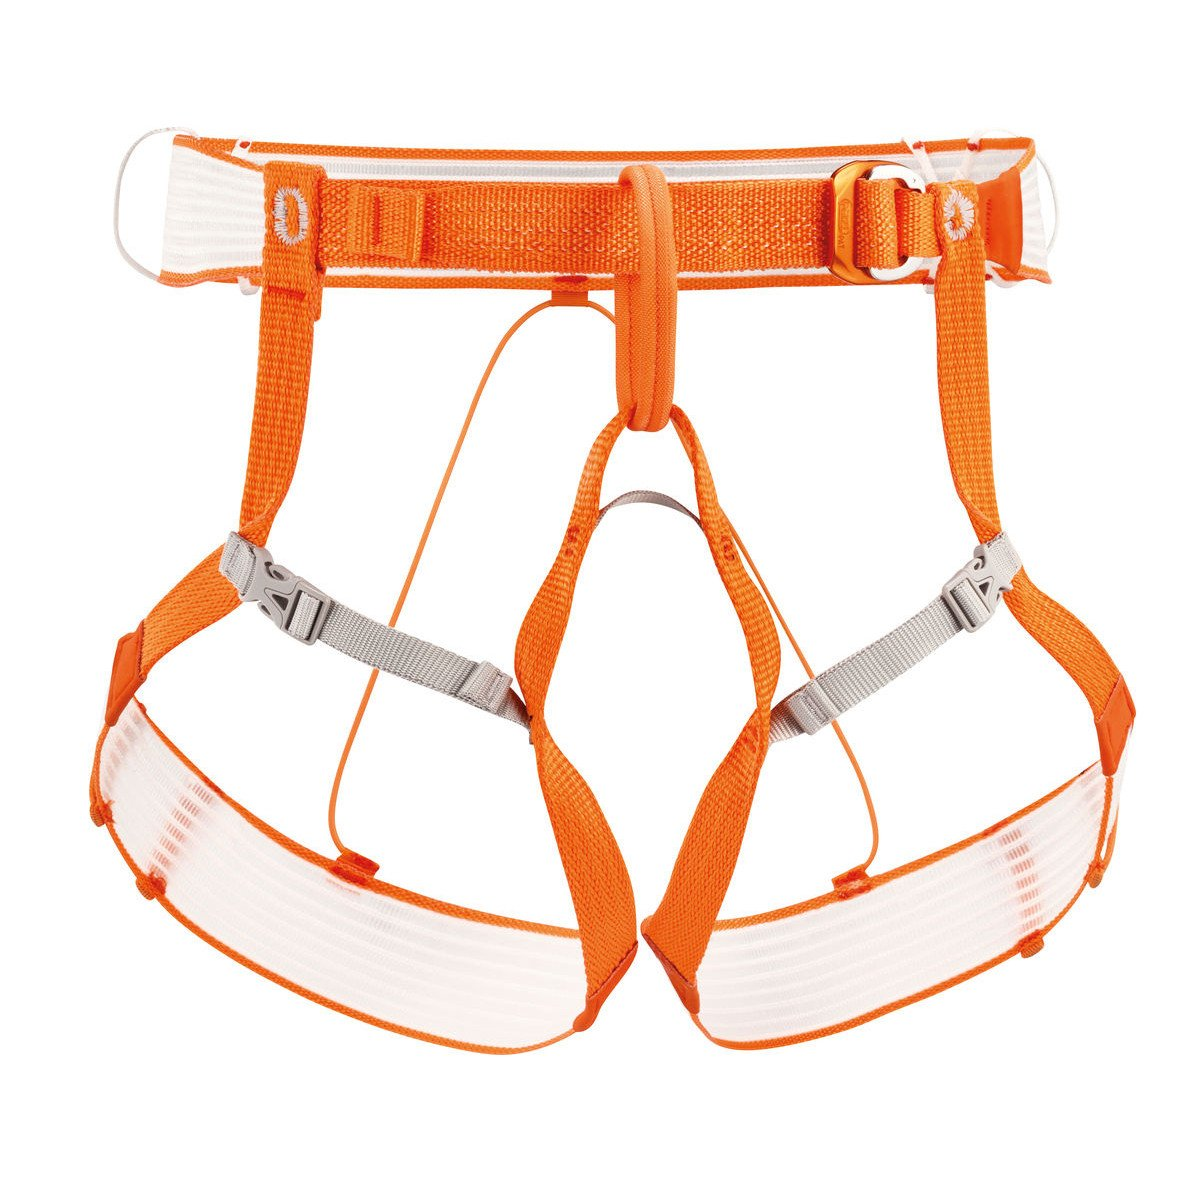 Petzl Altitude Harness, front view in Orange and grey colours